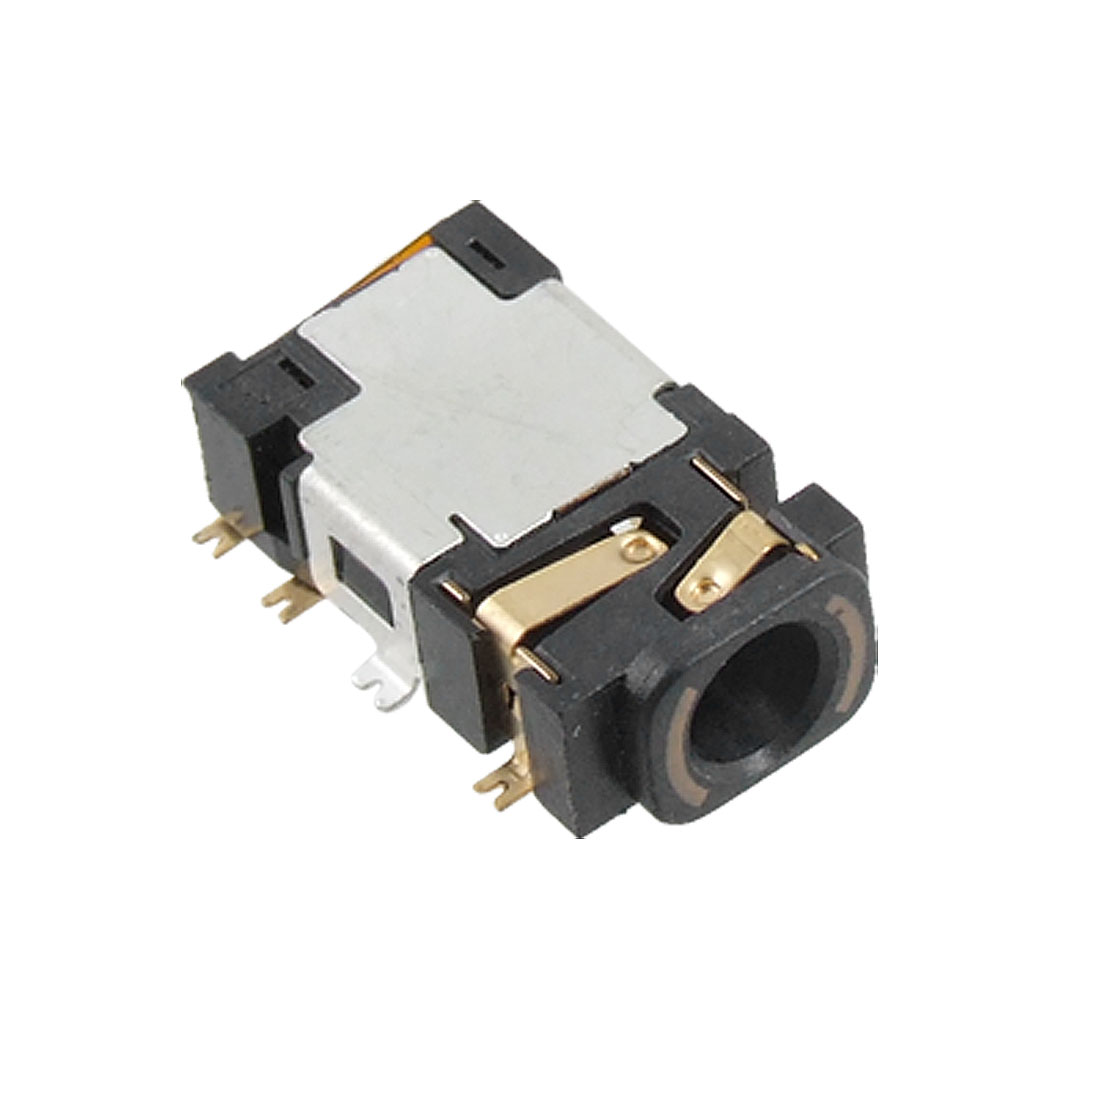 Replacement Part Earphone Jack Connector for Nokia 5310